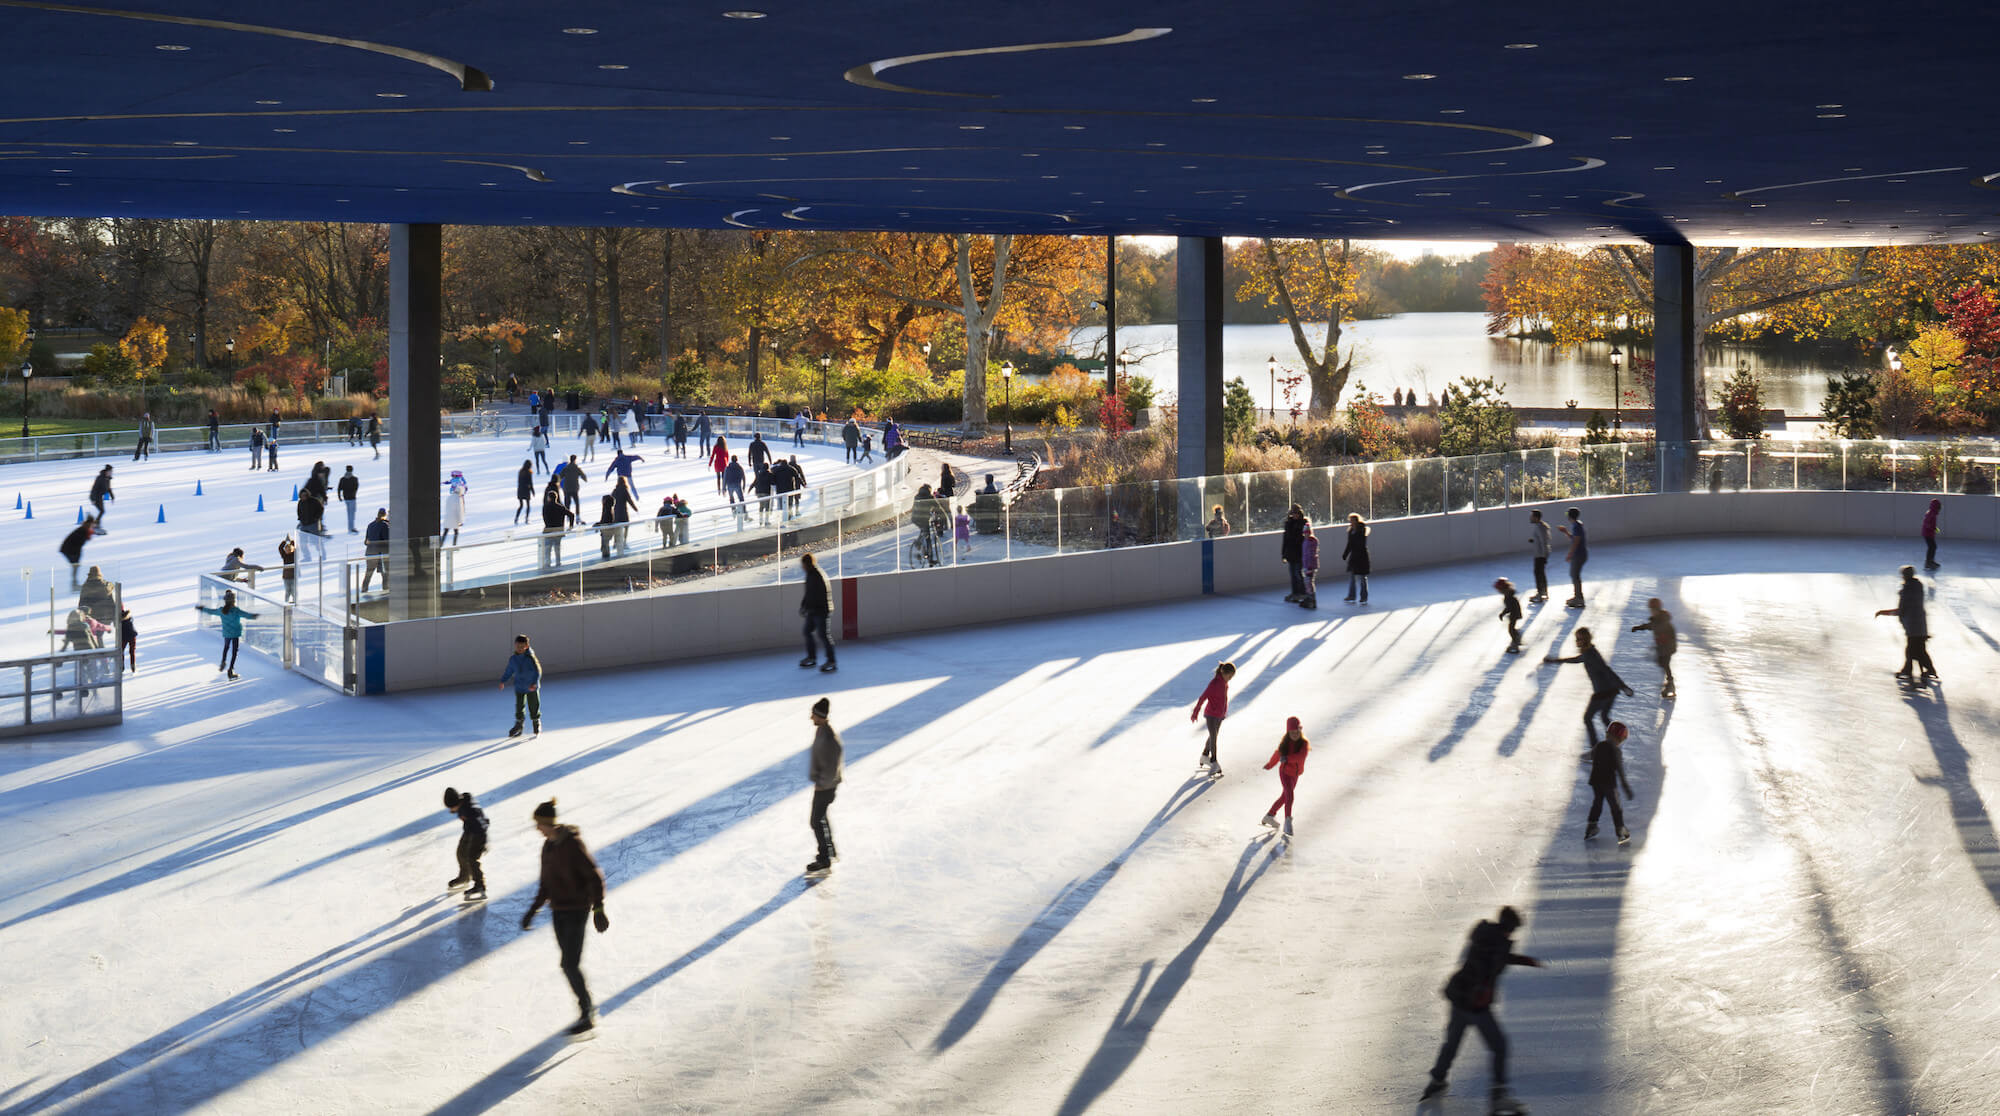 The LaFrak Center Ice Rink in Prospect Park